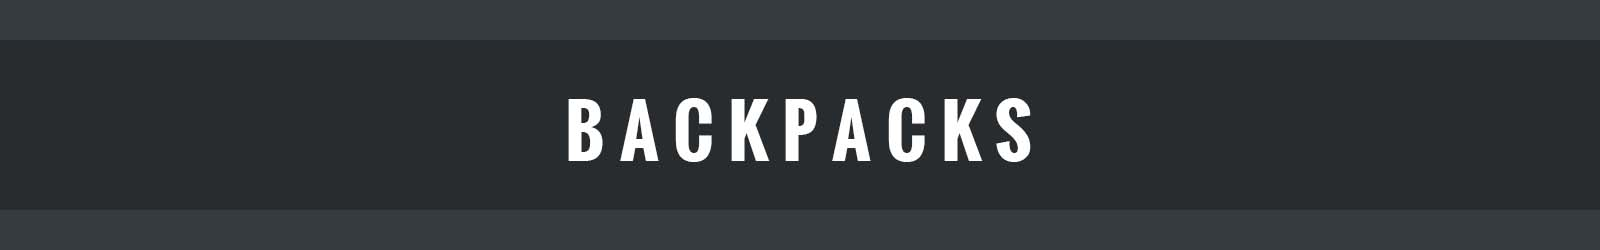 Backpacks banner